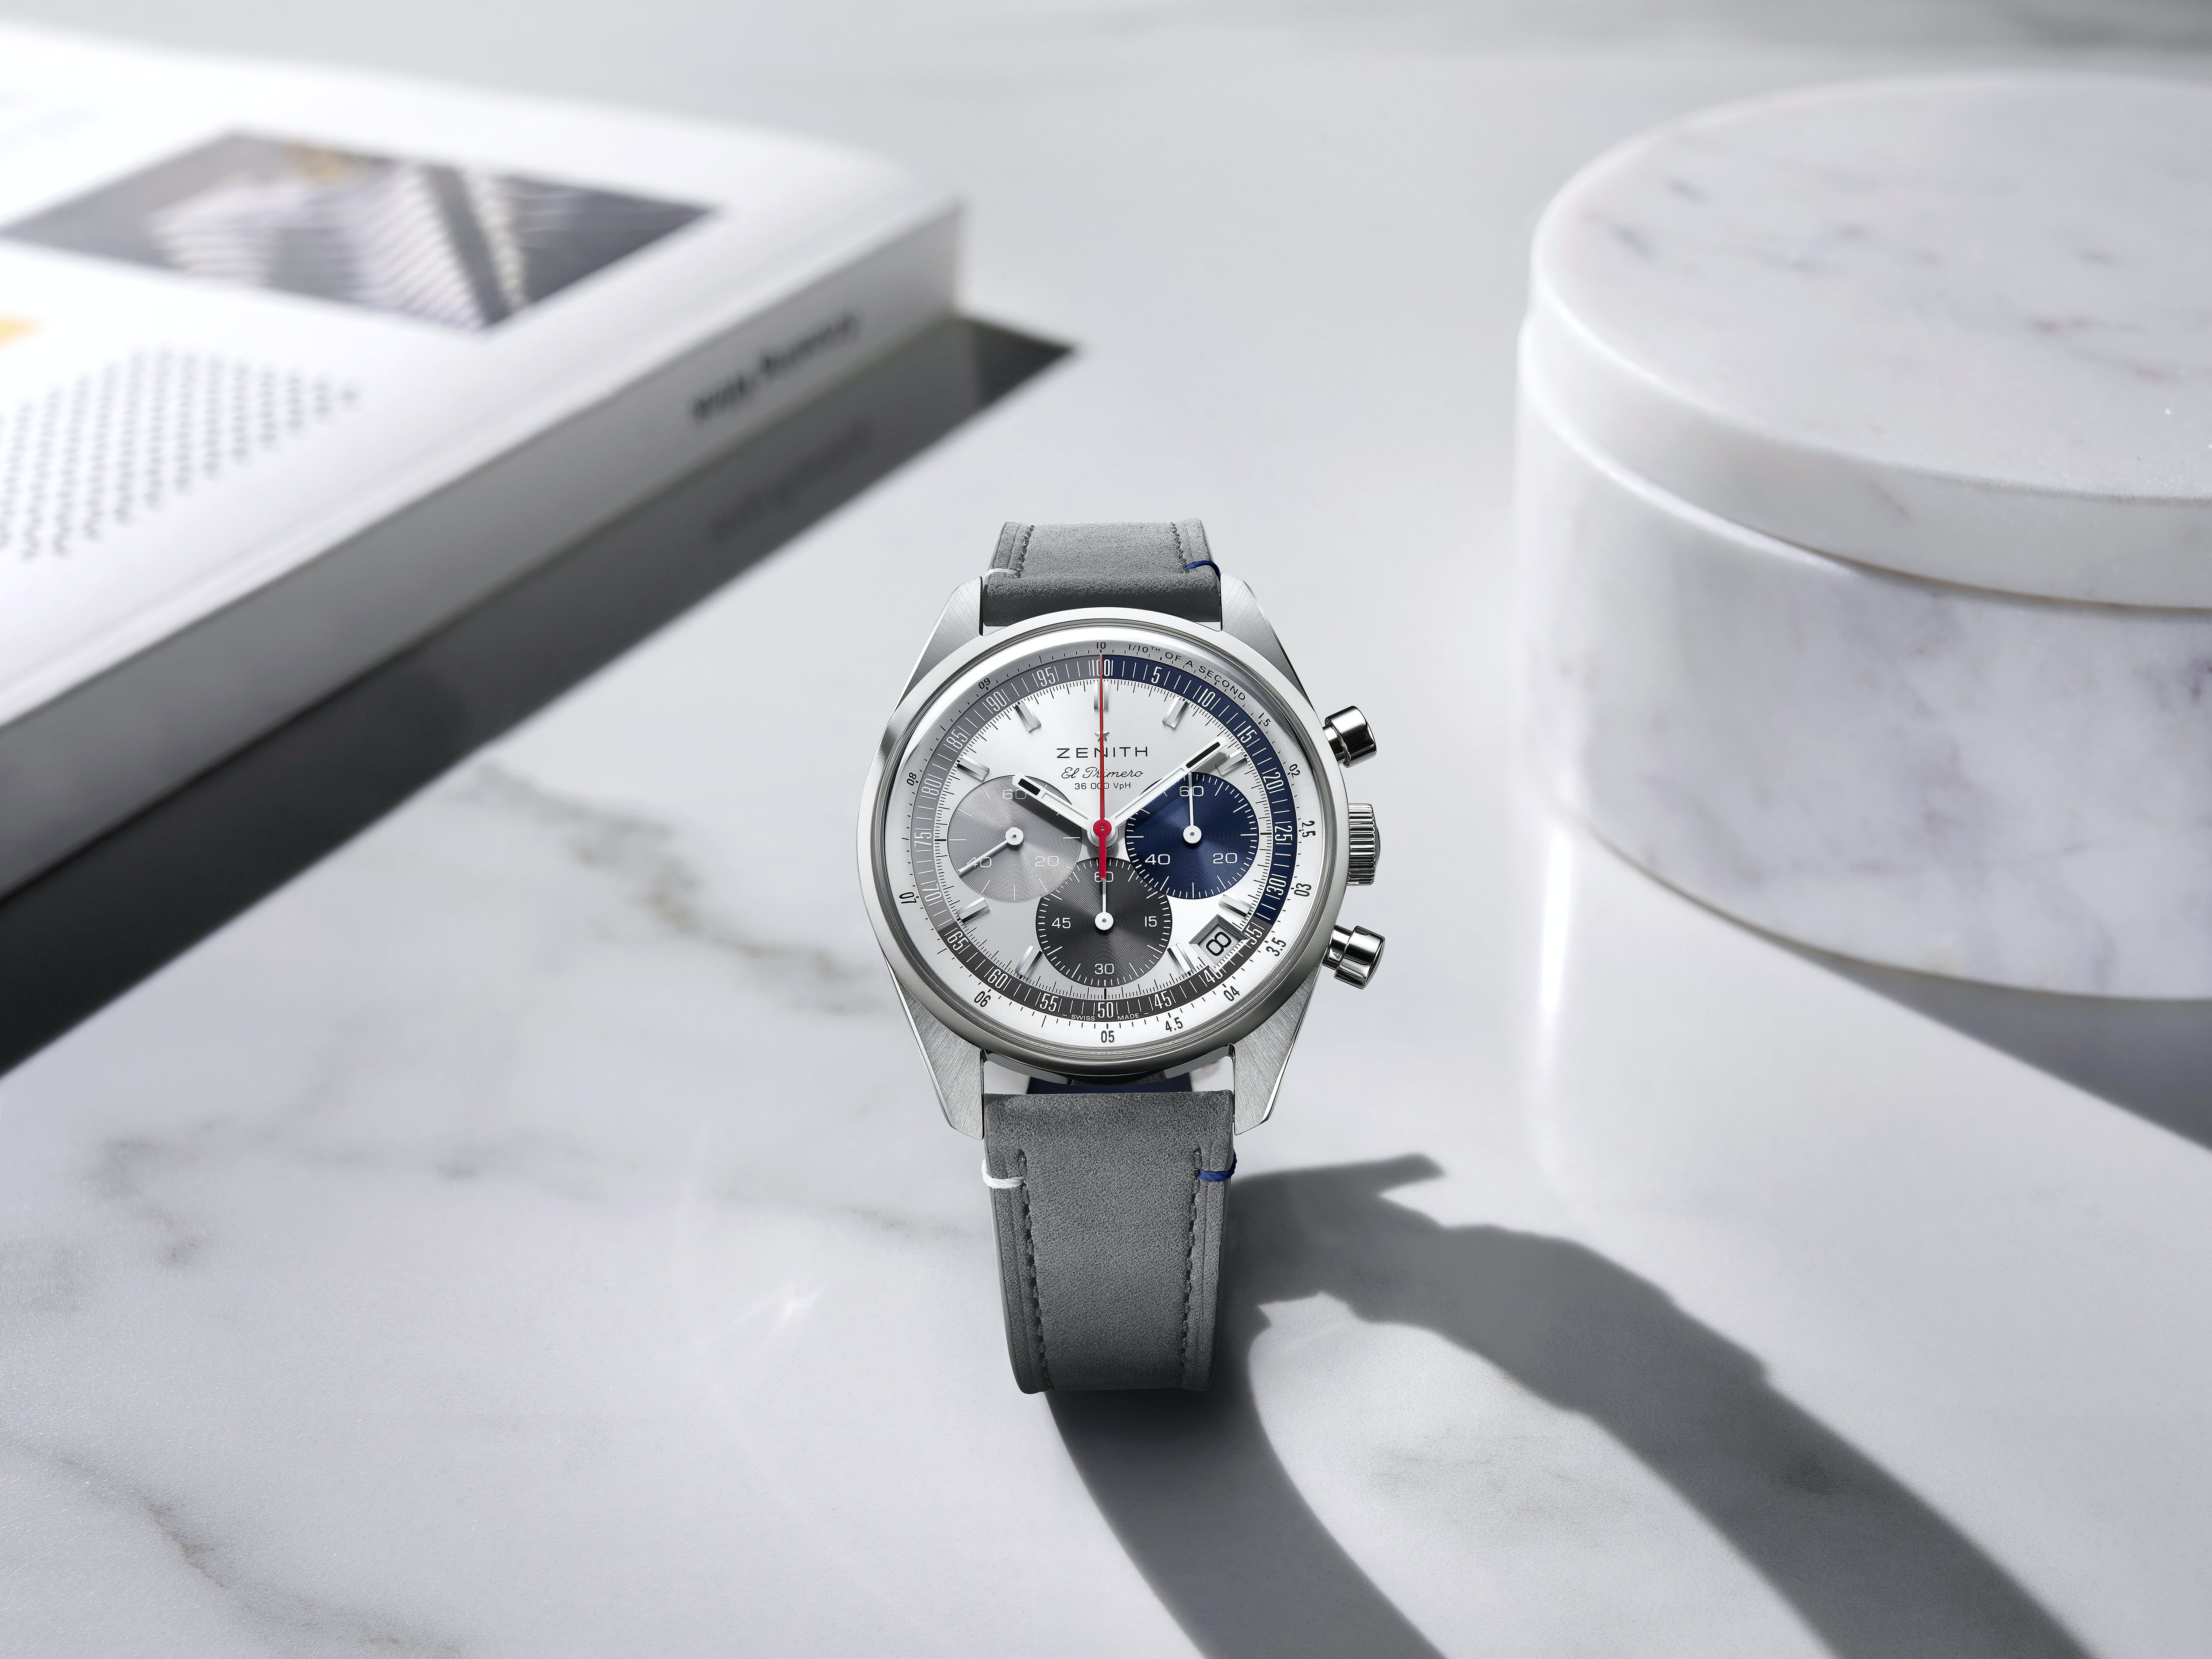 ZENITH CELEBRATES ONE OF ITS MOST EMBLEMATIC DESIGN ELEMENTS IN THE TRI-COLOURFUL ONLINE-EXCLUSIVE CHRONOMASTER ORIGINAL